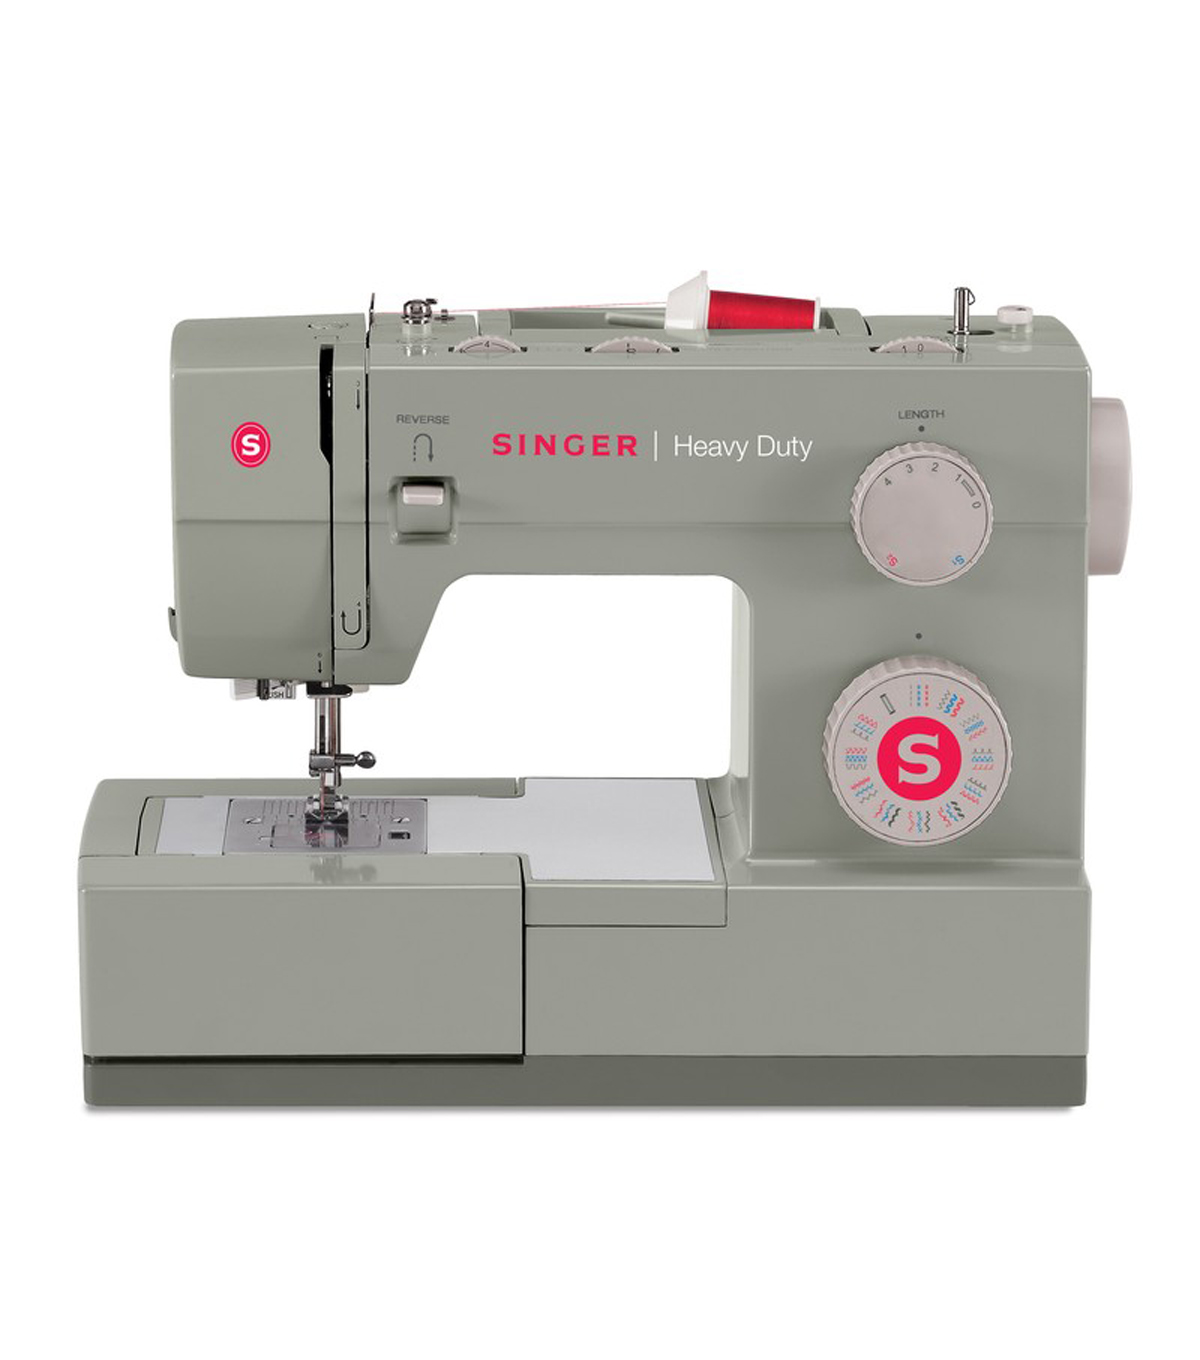 Singer 4452 - Heavy Duty Sewing Machine | JOANN : buying a sewing machine for quilting - Adamdwight.com